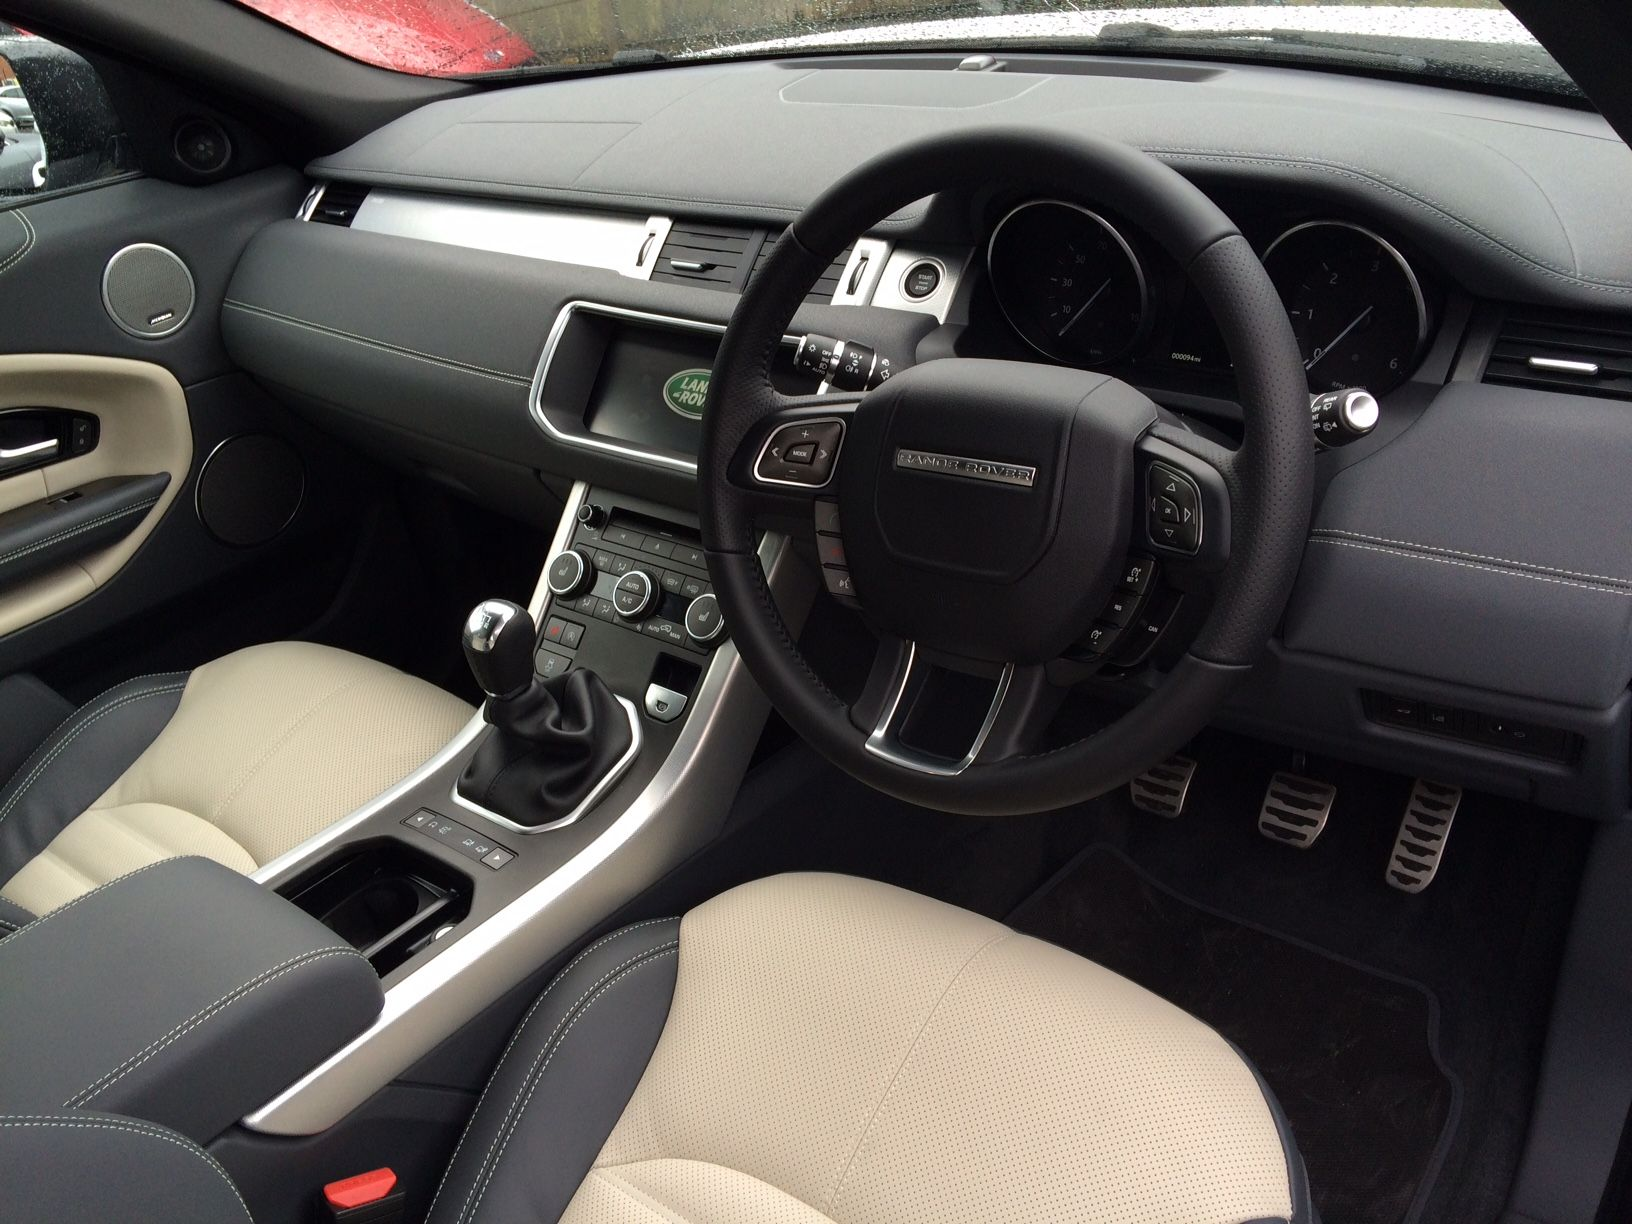 pure listings evoque kms sunroof low pano navigation motors leather landrover land awd silverzinc cheap range roofleathernavilow lease panoramic plushuge awdpure rover huge plus